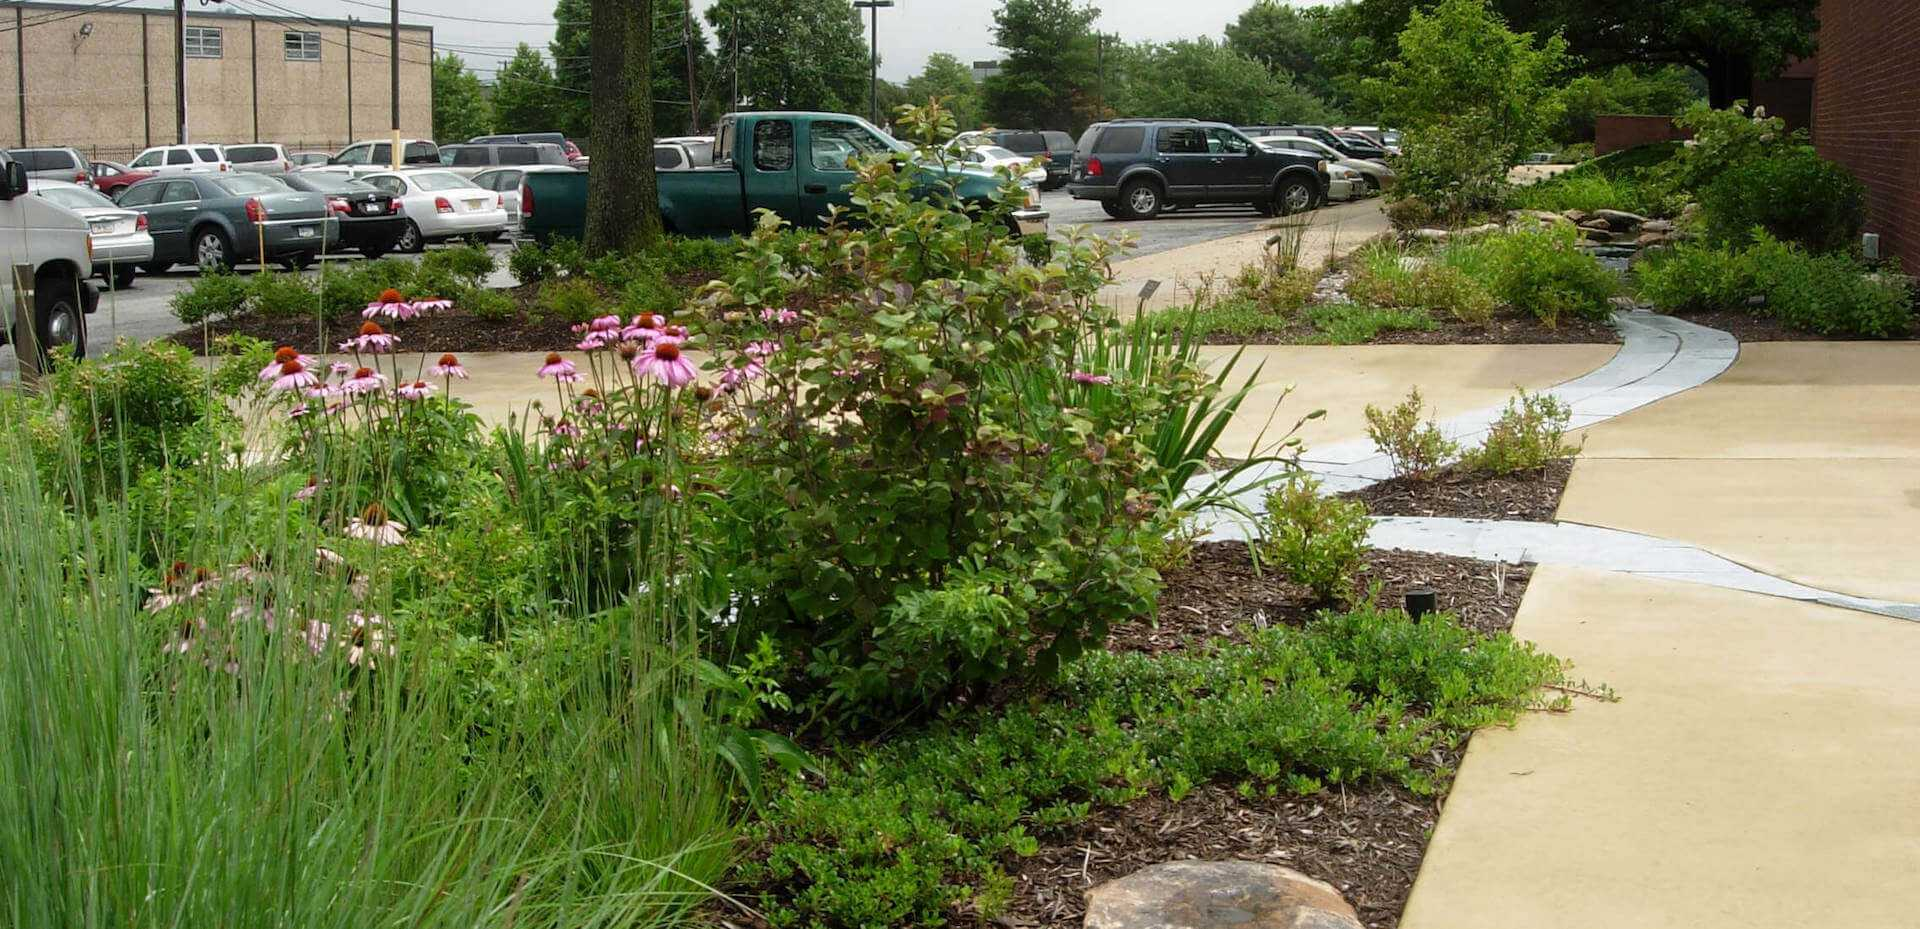 landscaping next to parking lot